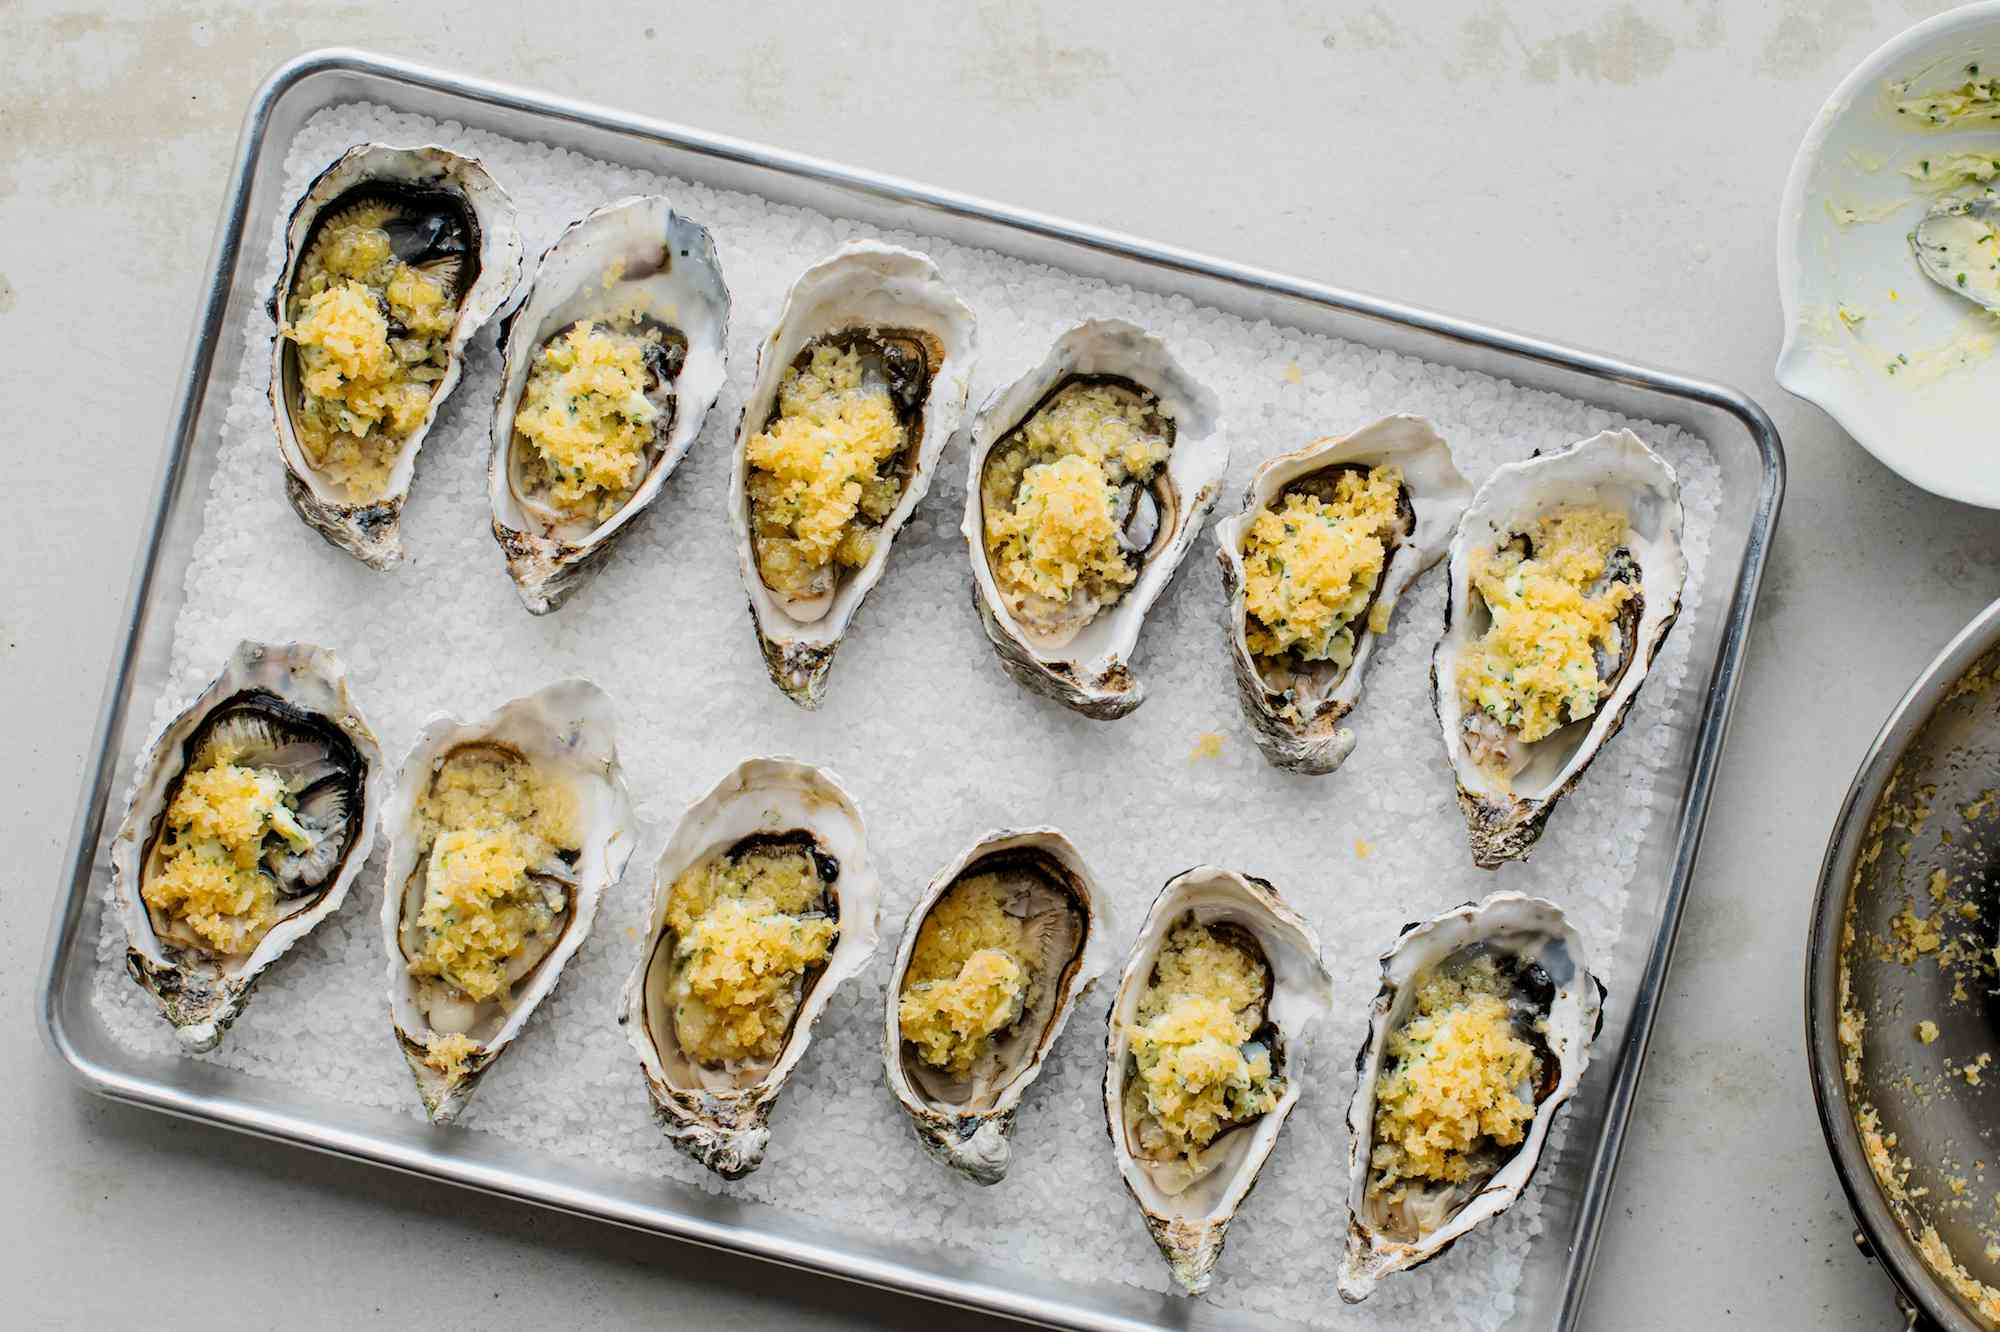 Prepared oysters in a pan ready to be baked